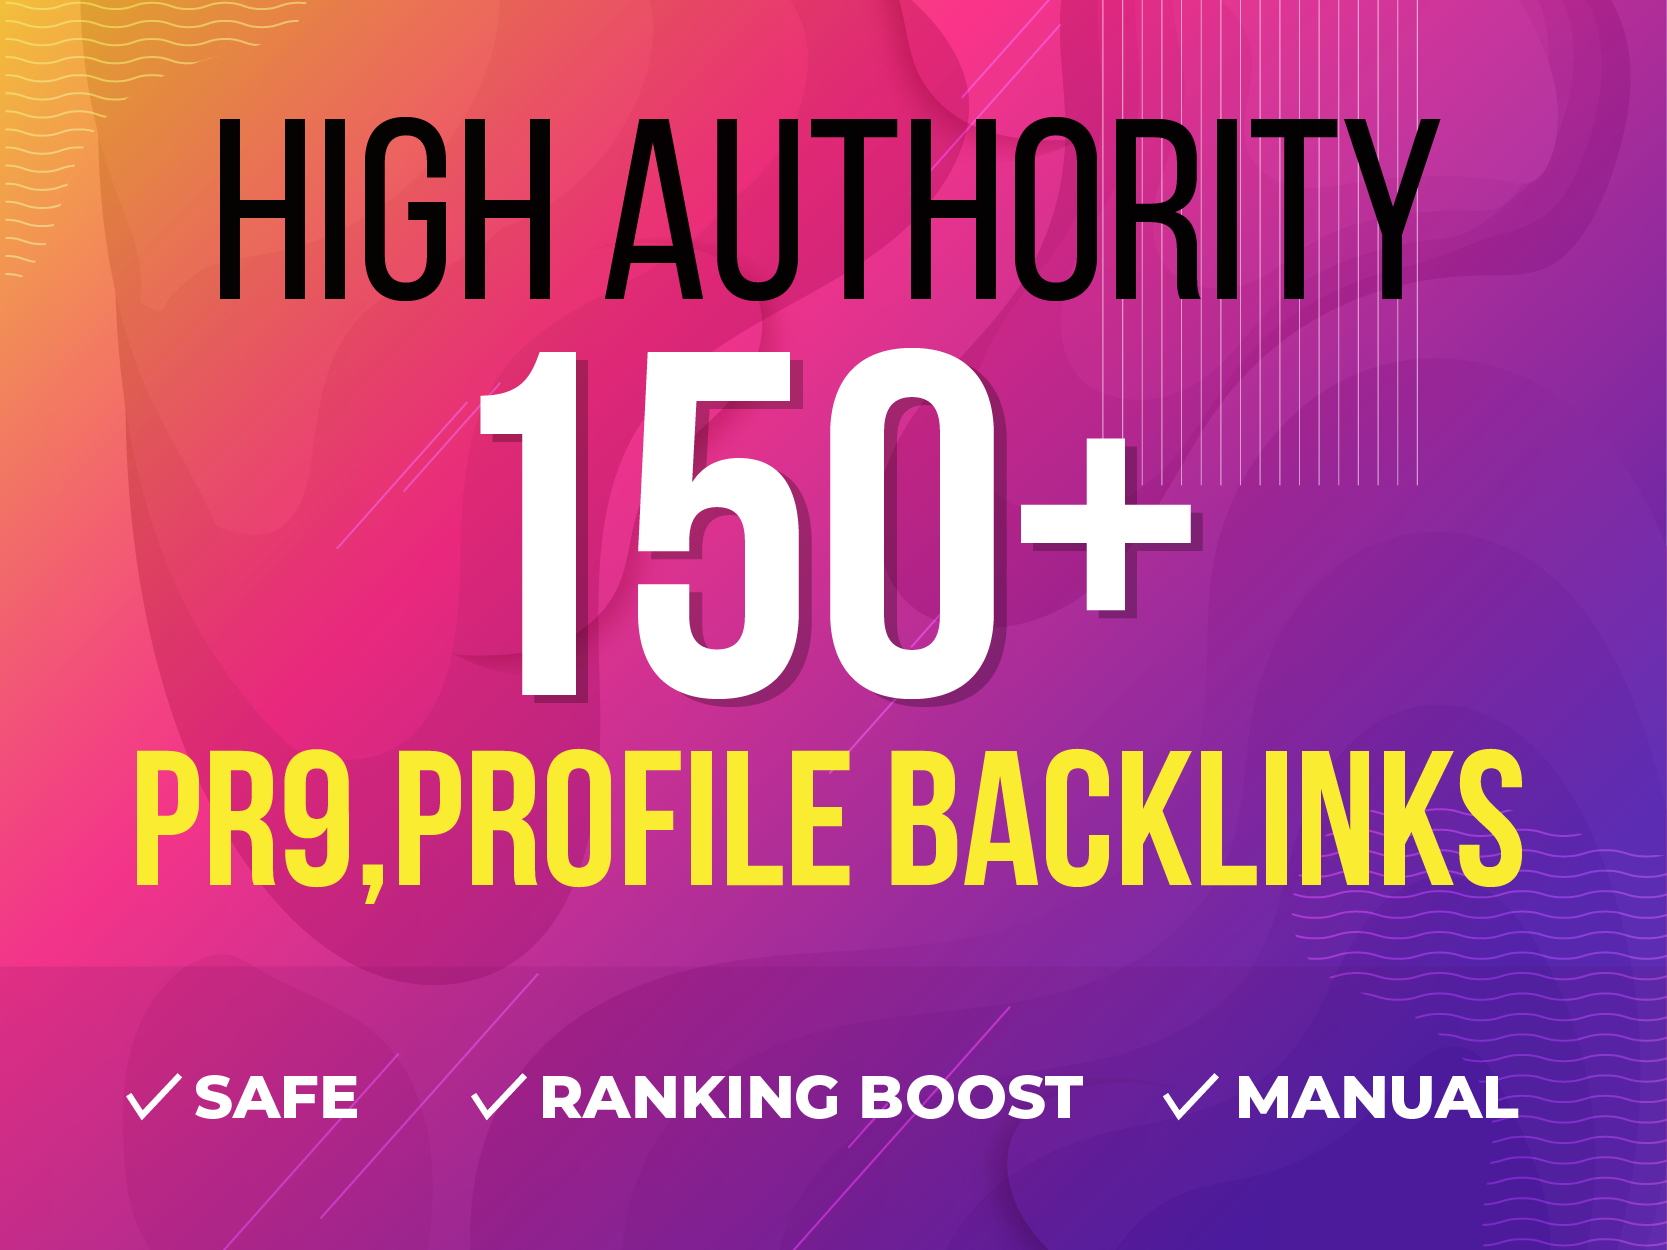 Manually 150+ High Authority PR9,  Profile and SEO Backlinks for 5